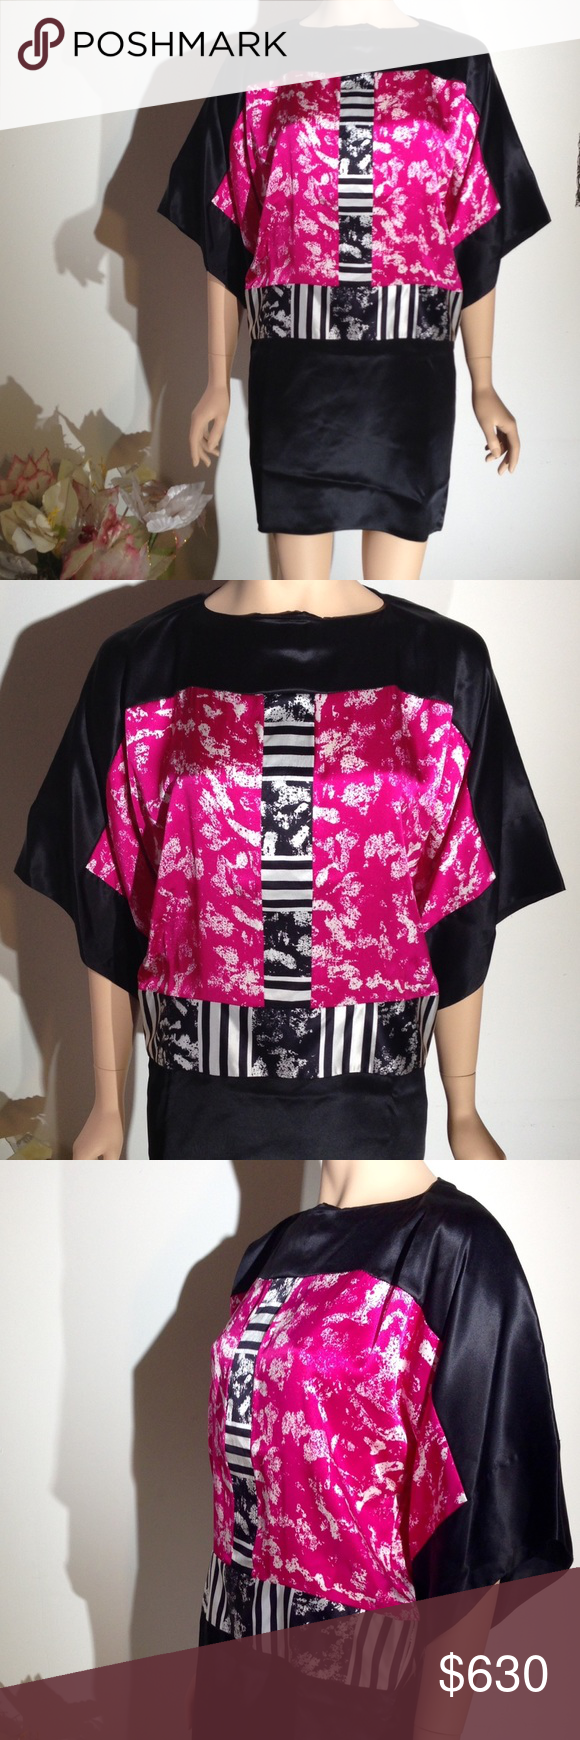 NWT DURO OLOWU Silk Dress Size 36 $1469 w tax DURO OLOWU 100% Silk,  magenta pink, black and white,  Abstact print, 3/4 sleeve Dress above the knee (mini) New with Tags including price, size 36.  Retail total with tax is $1470.  Made in the United Kingdom DURO OLOWU Dresses Mini